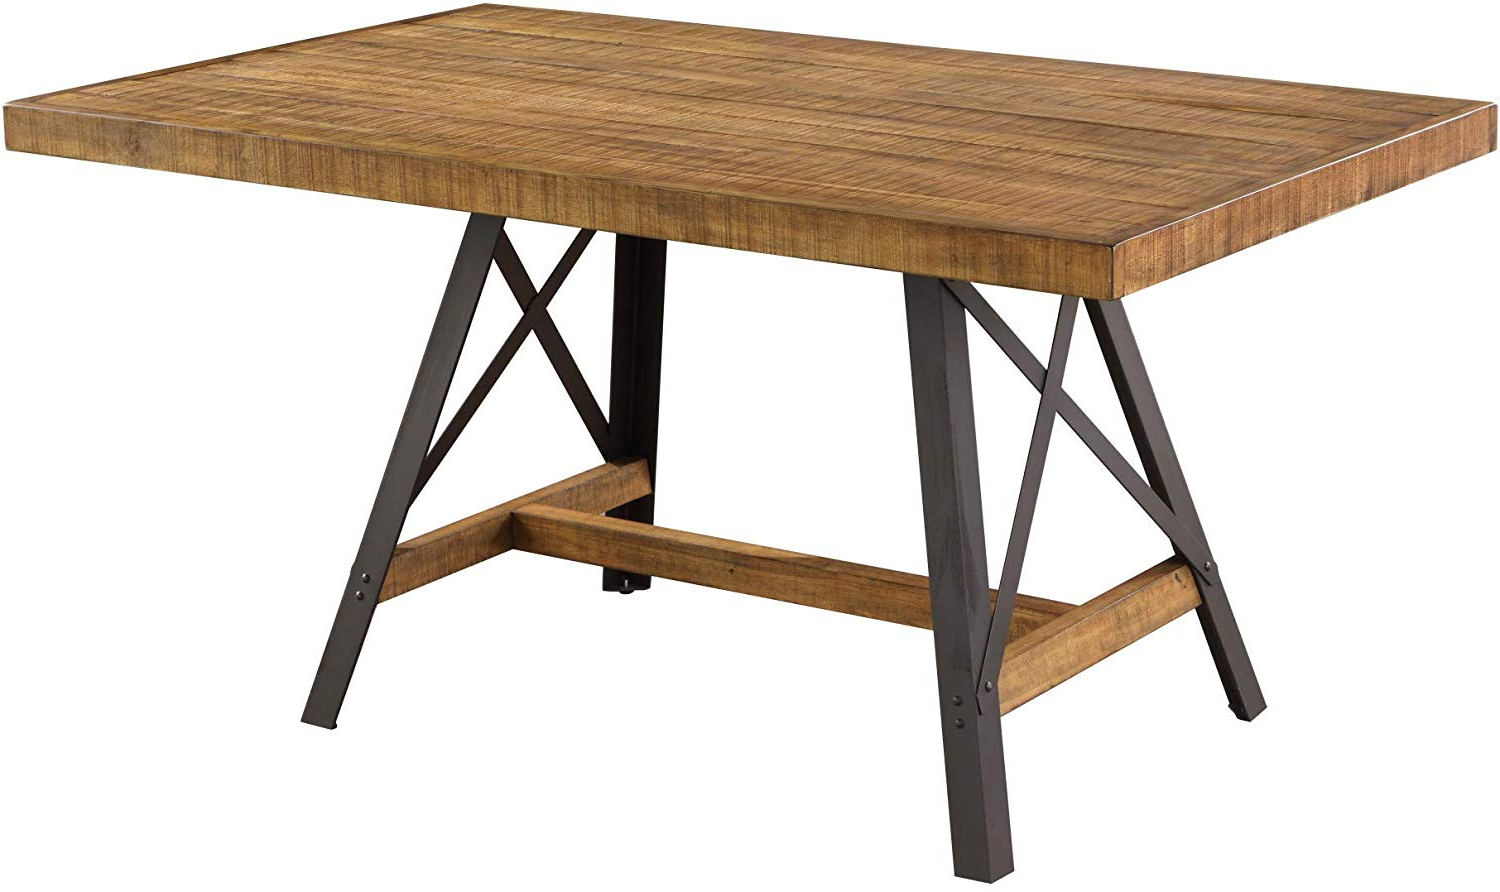 "Acacia Wood Dining Tables With Sheet Metal Base In Favorite Joey 60"" Dining Table In Gingersnap With Rustic Plank Top And Metal Base, Artum Hill (View 21 of 25)"